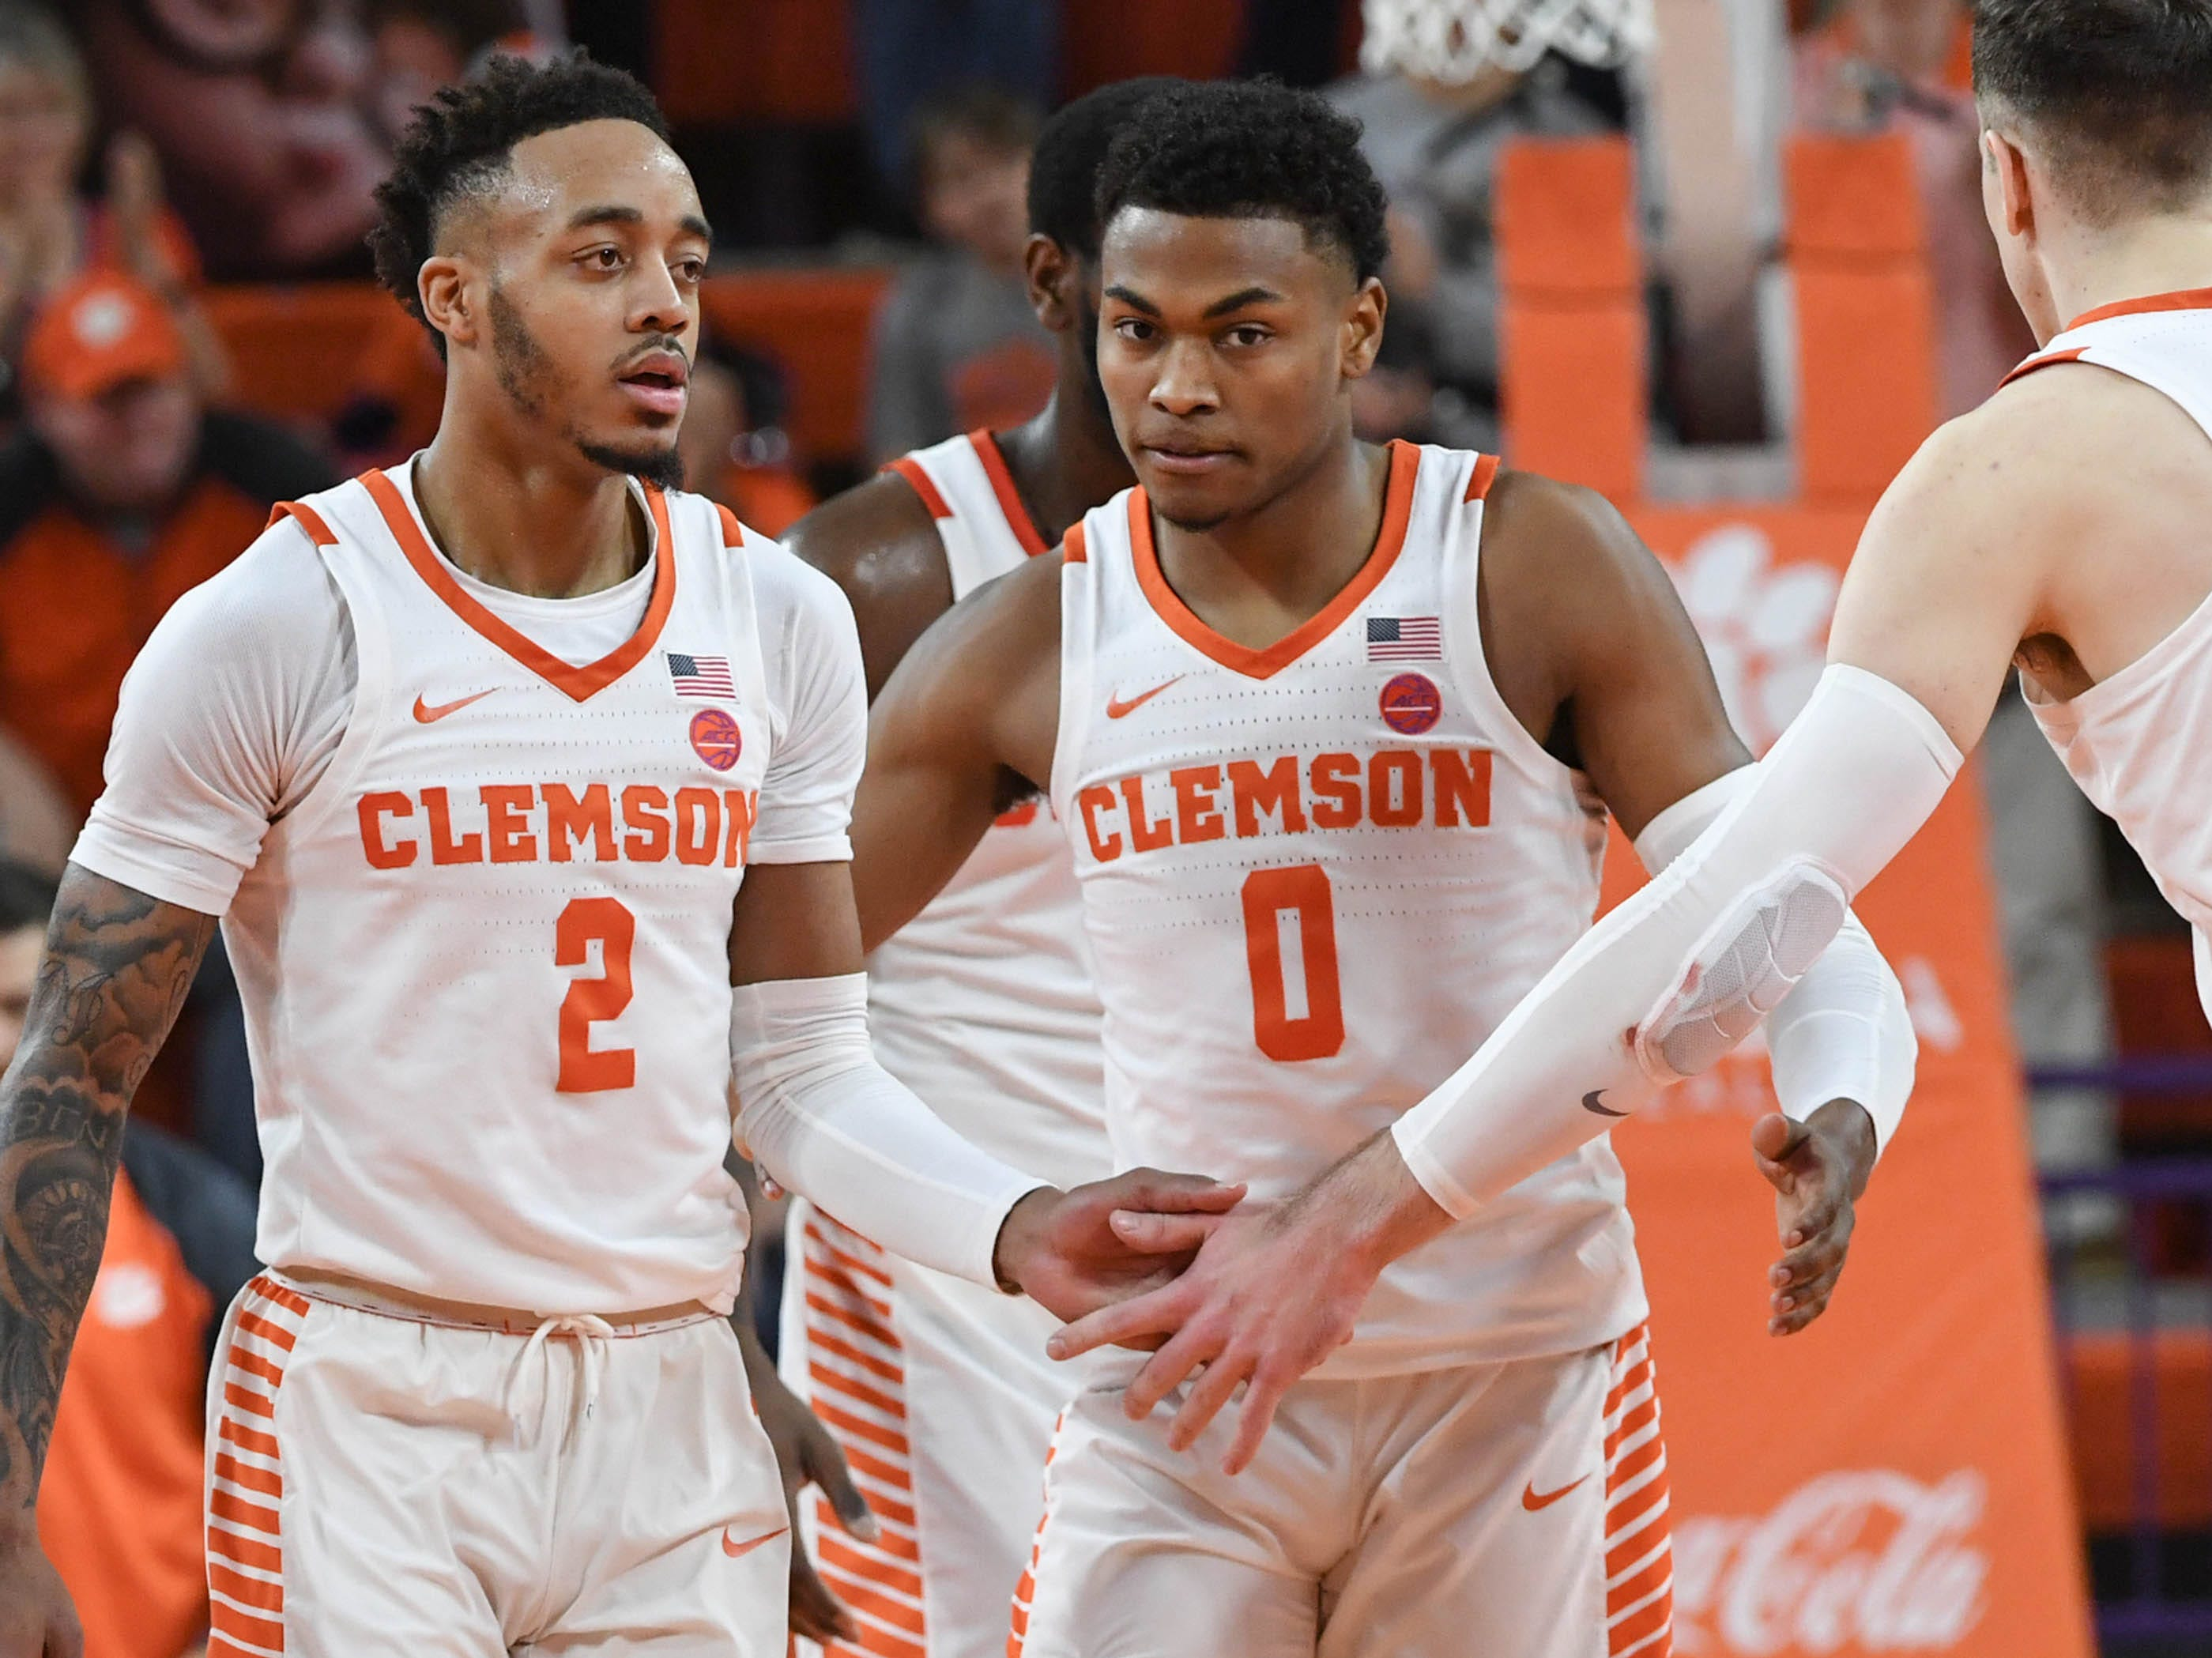 Clemson guard Marcquise Reed (2) and Clemson center Clyde Trapp (0) during the second half in Littlejohn Coliseum in Clemson Saturday, March 9, 2019.